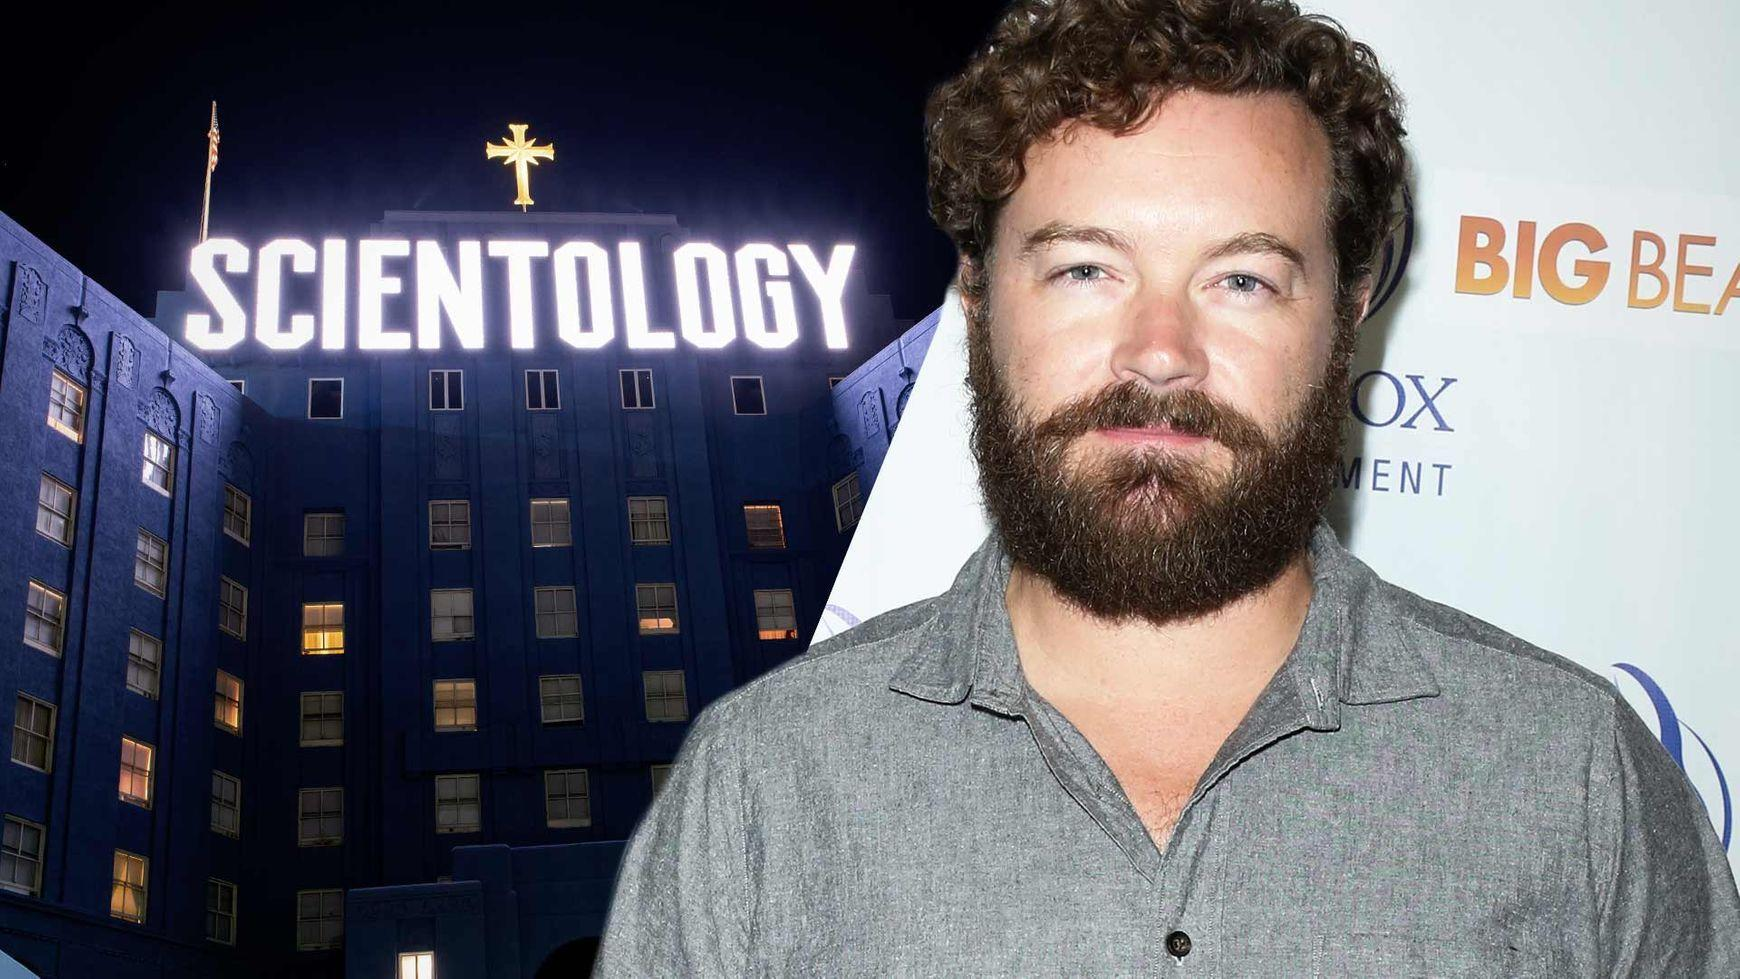 Danny Masterson's Alleged Sexual Assault Victims Serve Scientology's David Miscavige With Legal Papers